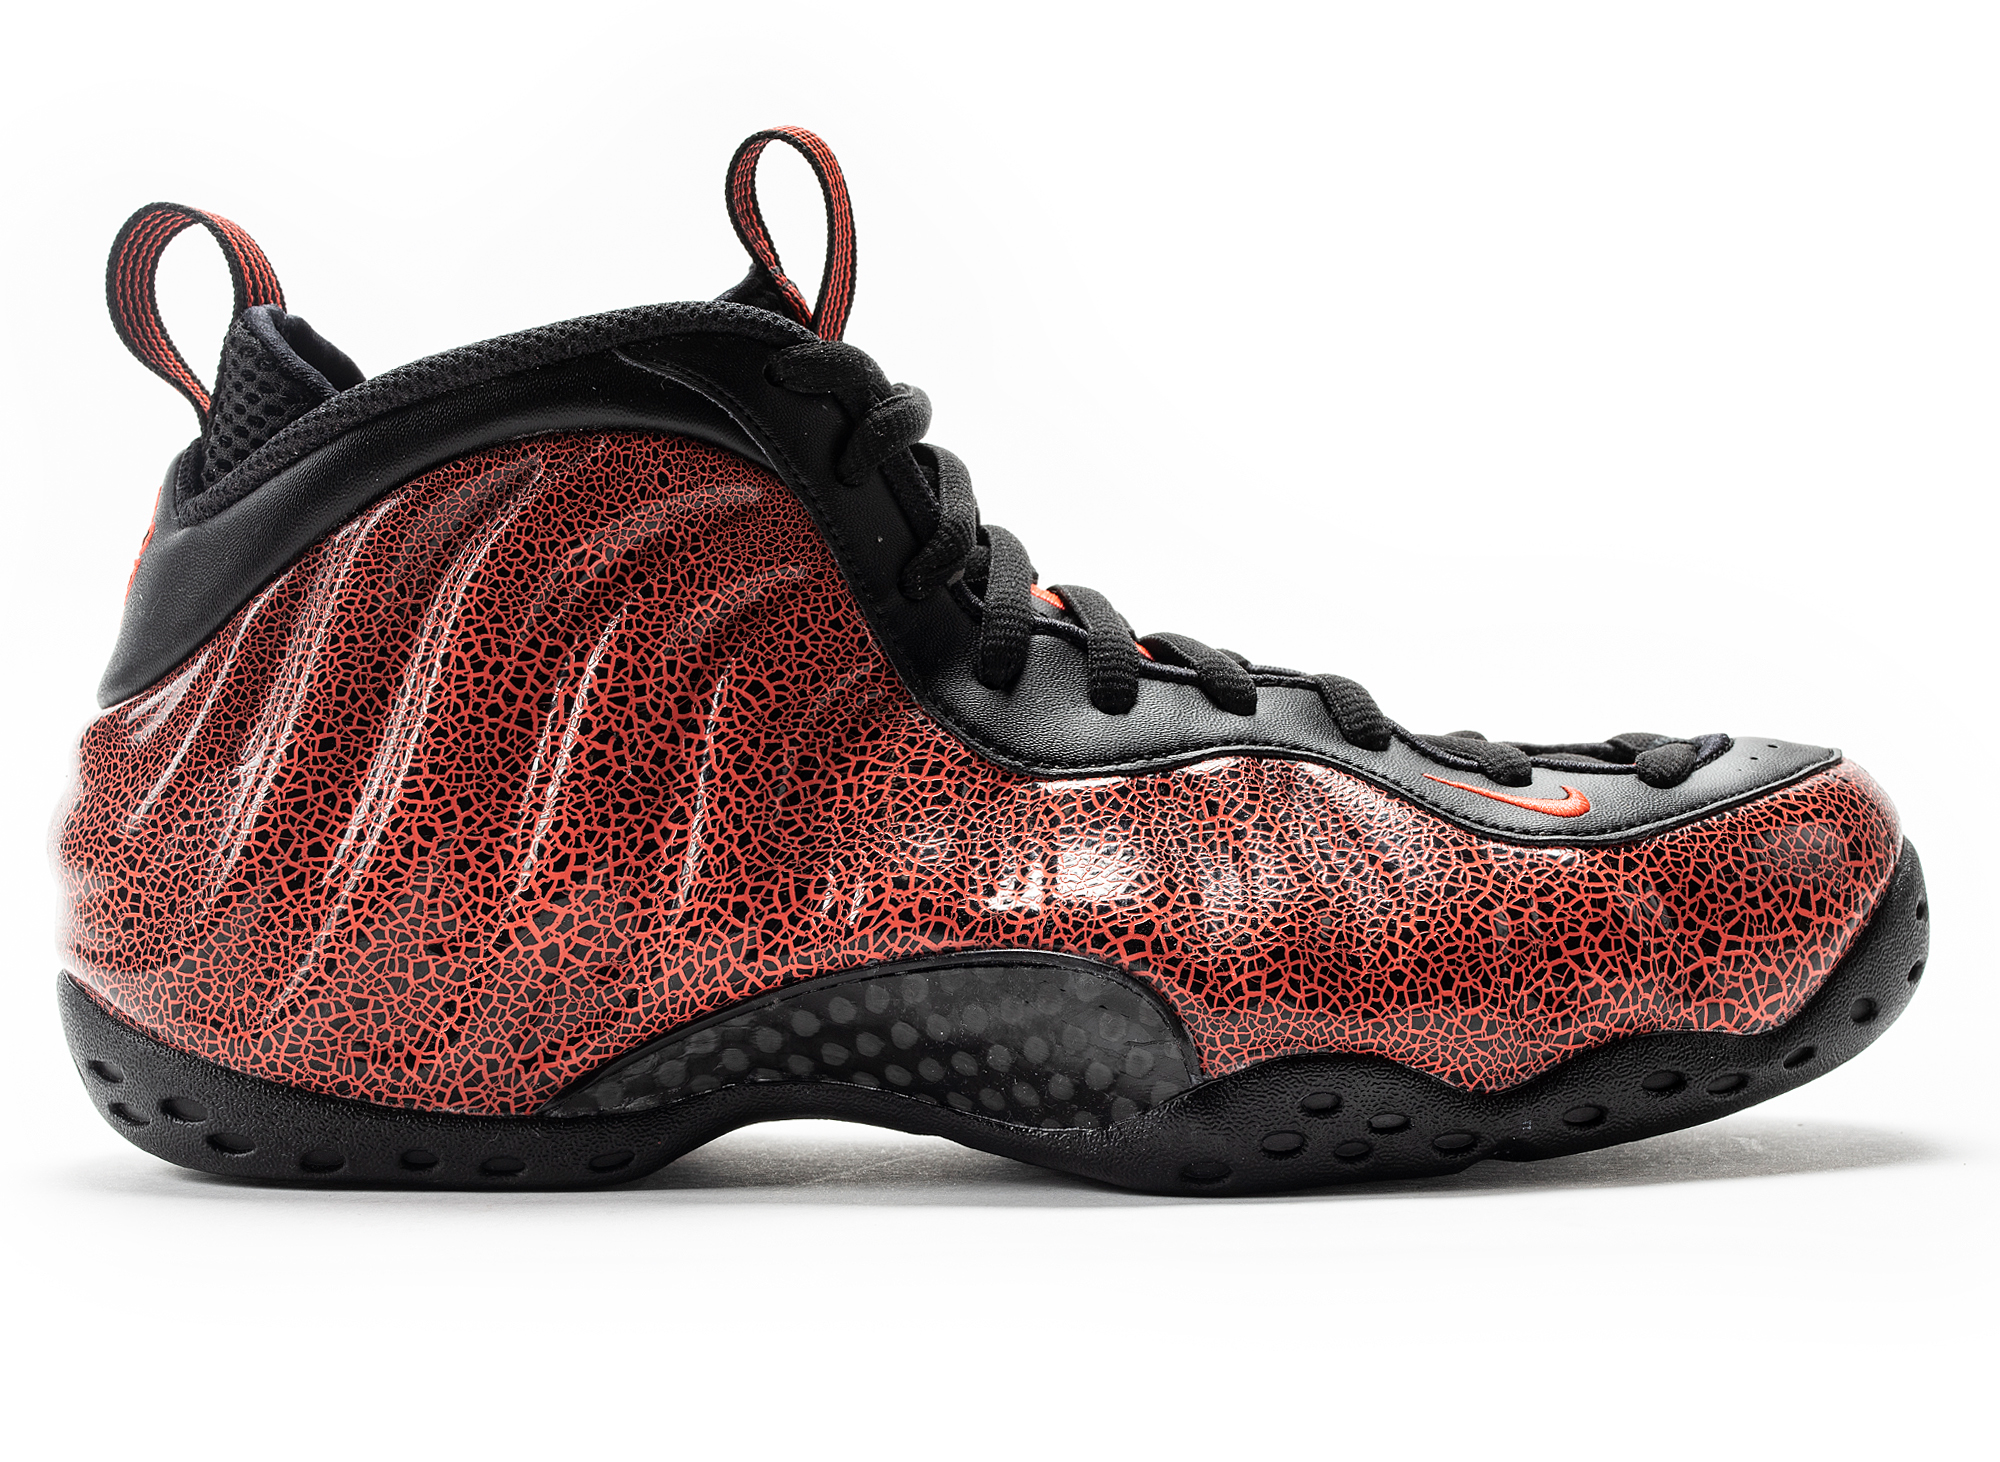 Nike Air Foamposite One 'Lava' XLD